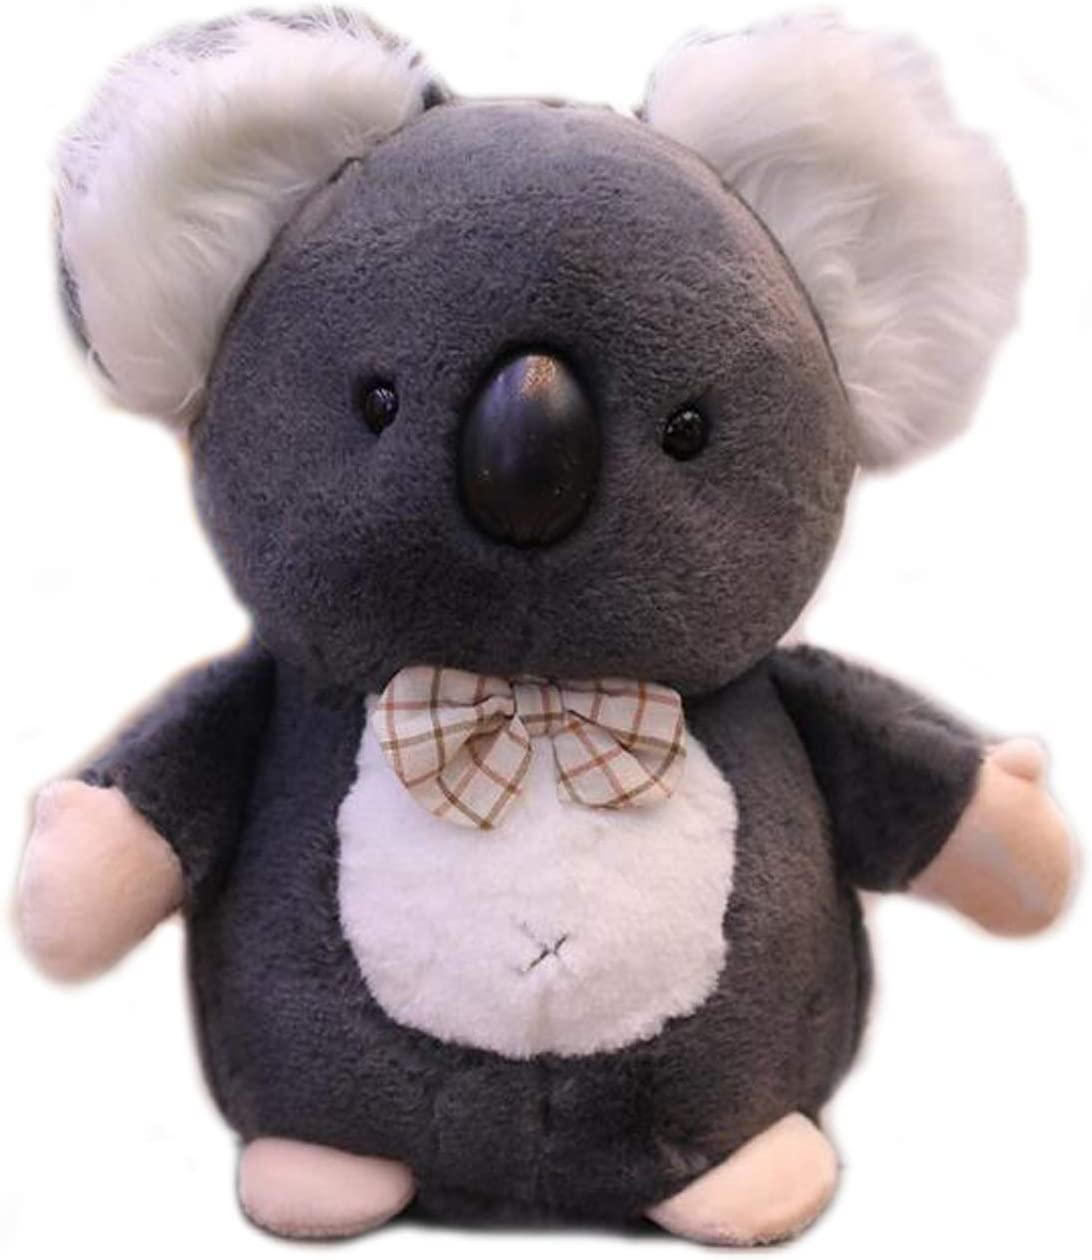 Plush Koala Bear Stuffed Animals Toys Dolls Gifts with Knot Bow Grey 8 Inches